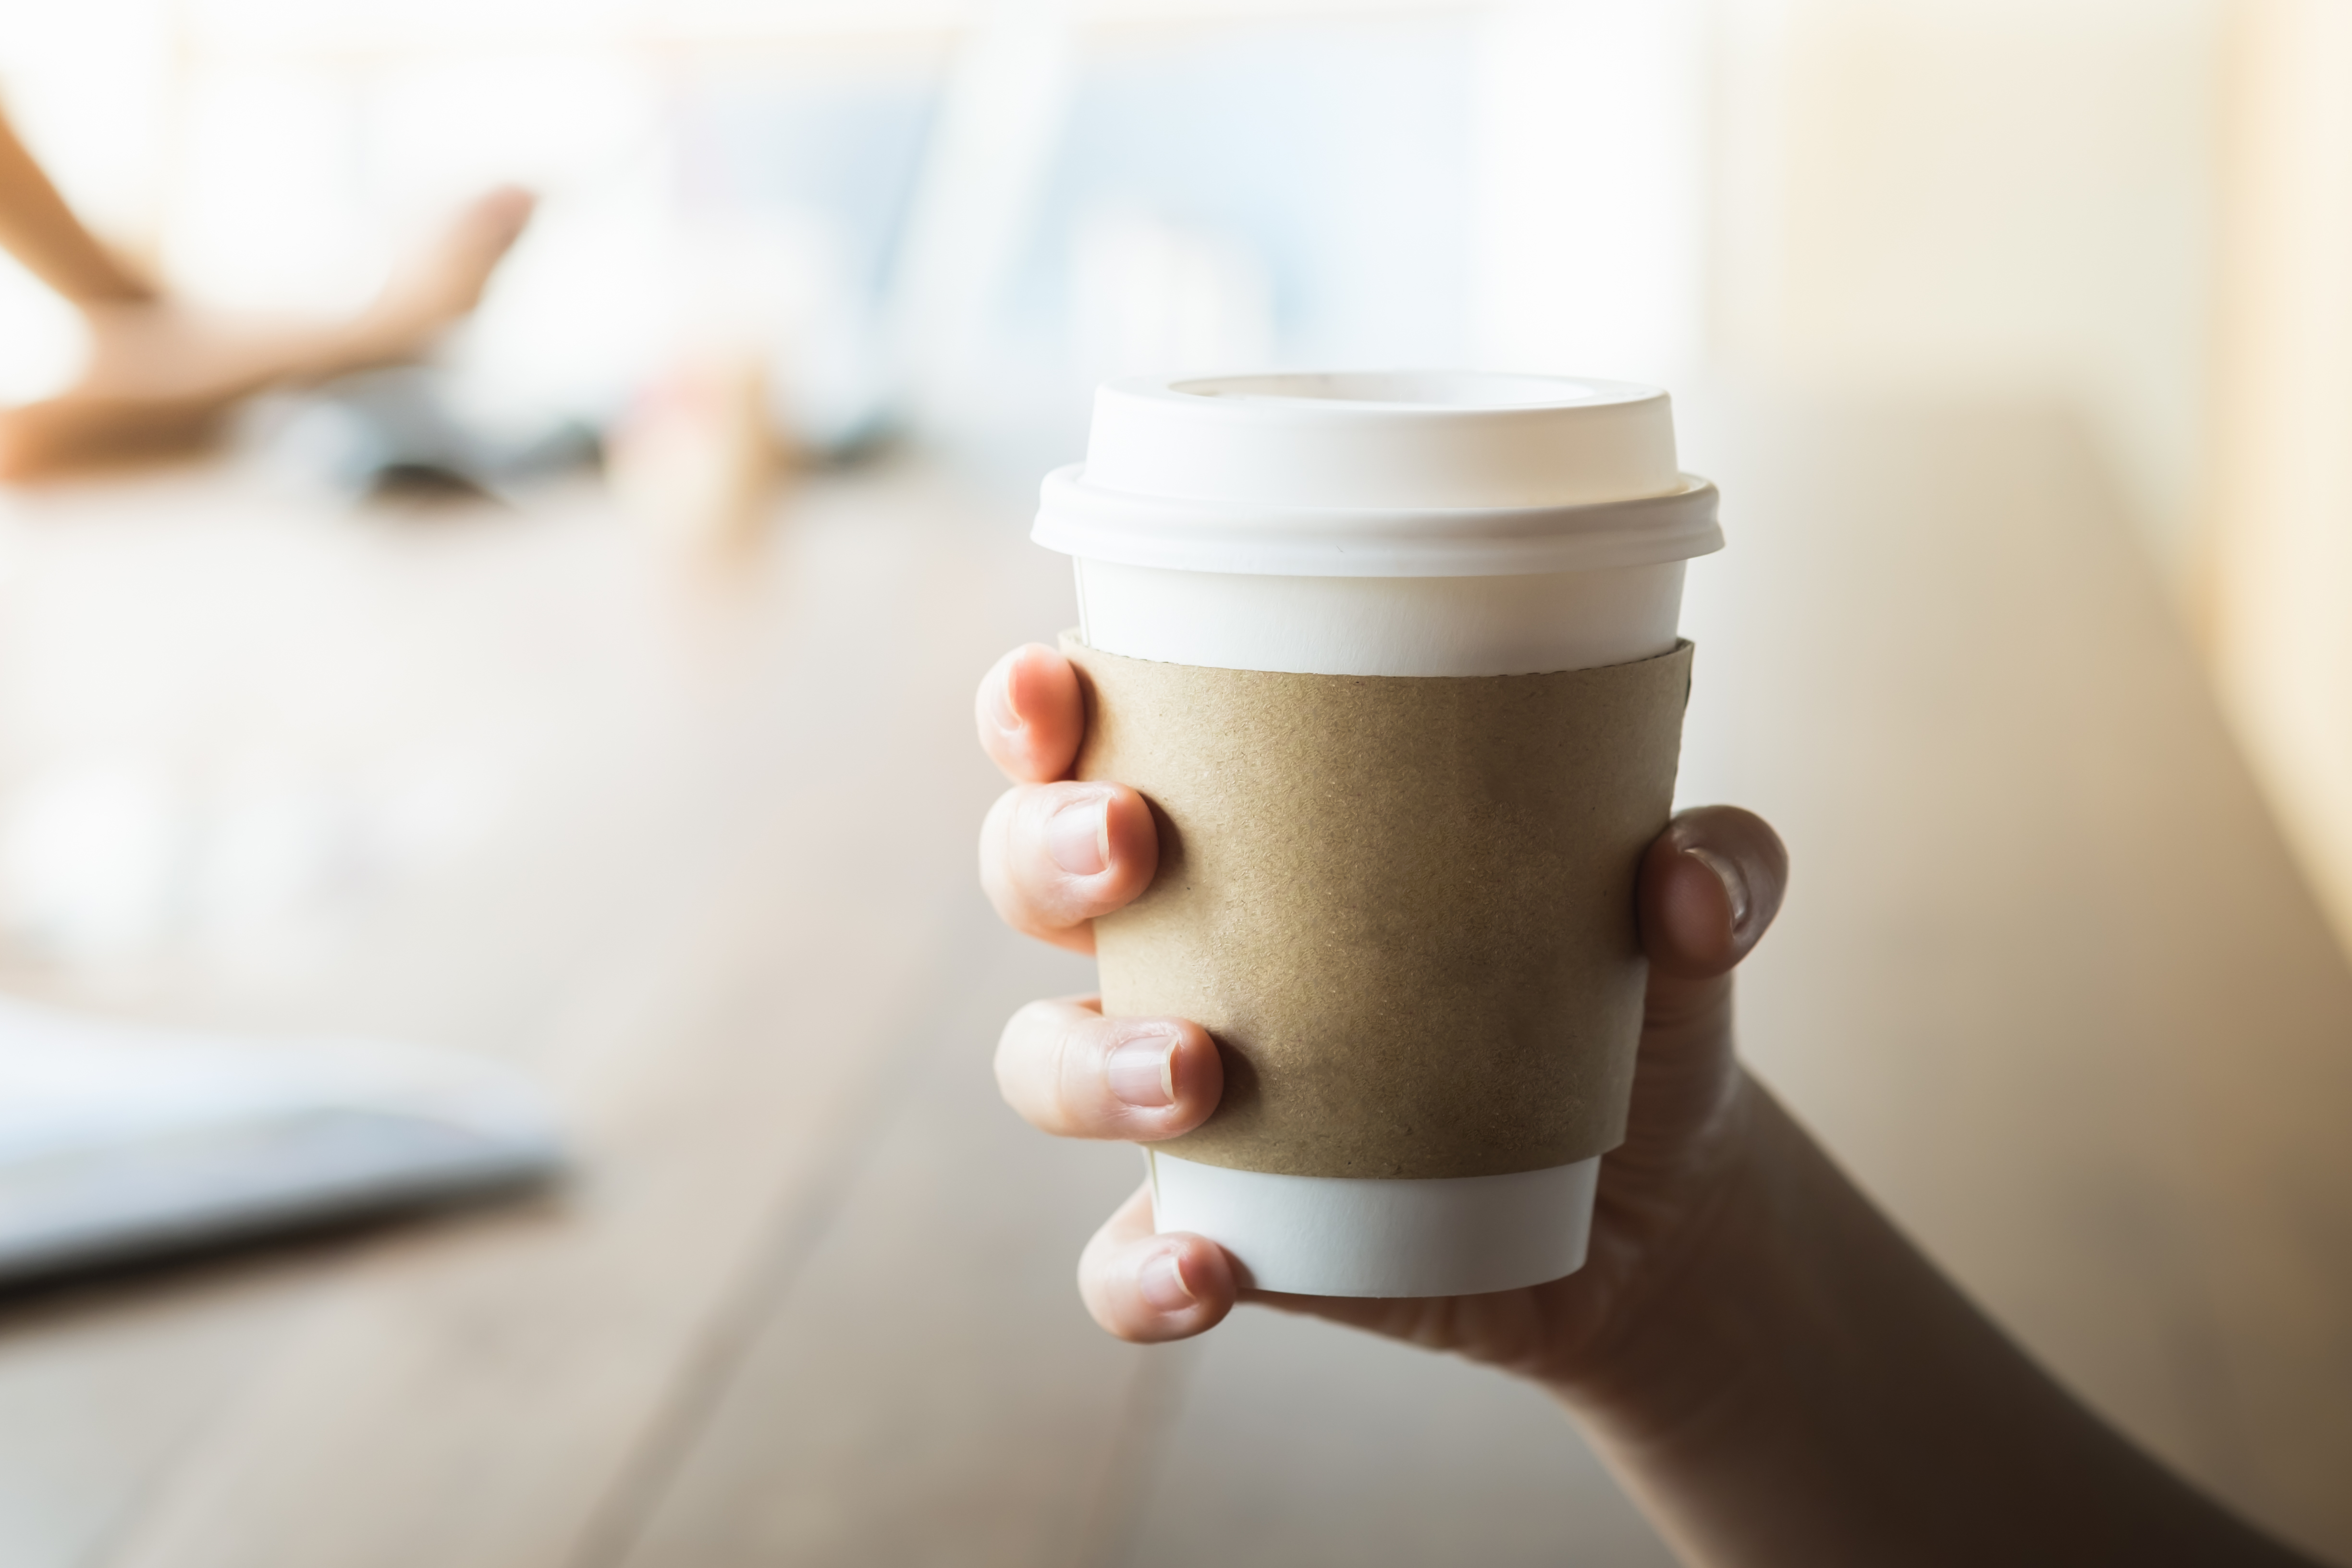 how to recycle coffee cups and sleeves - person holding a coffee cup